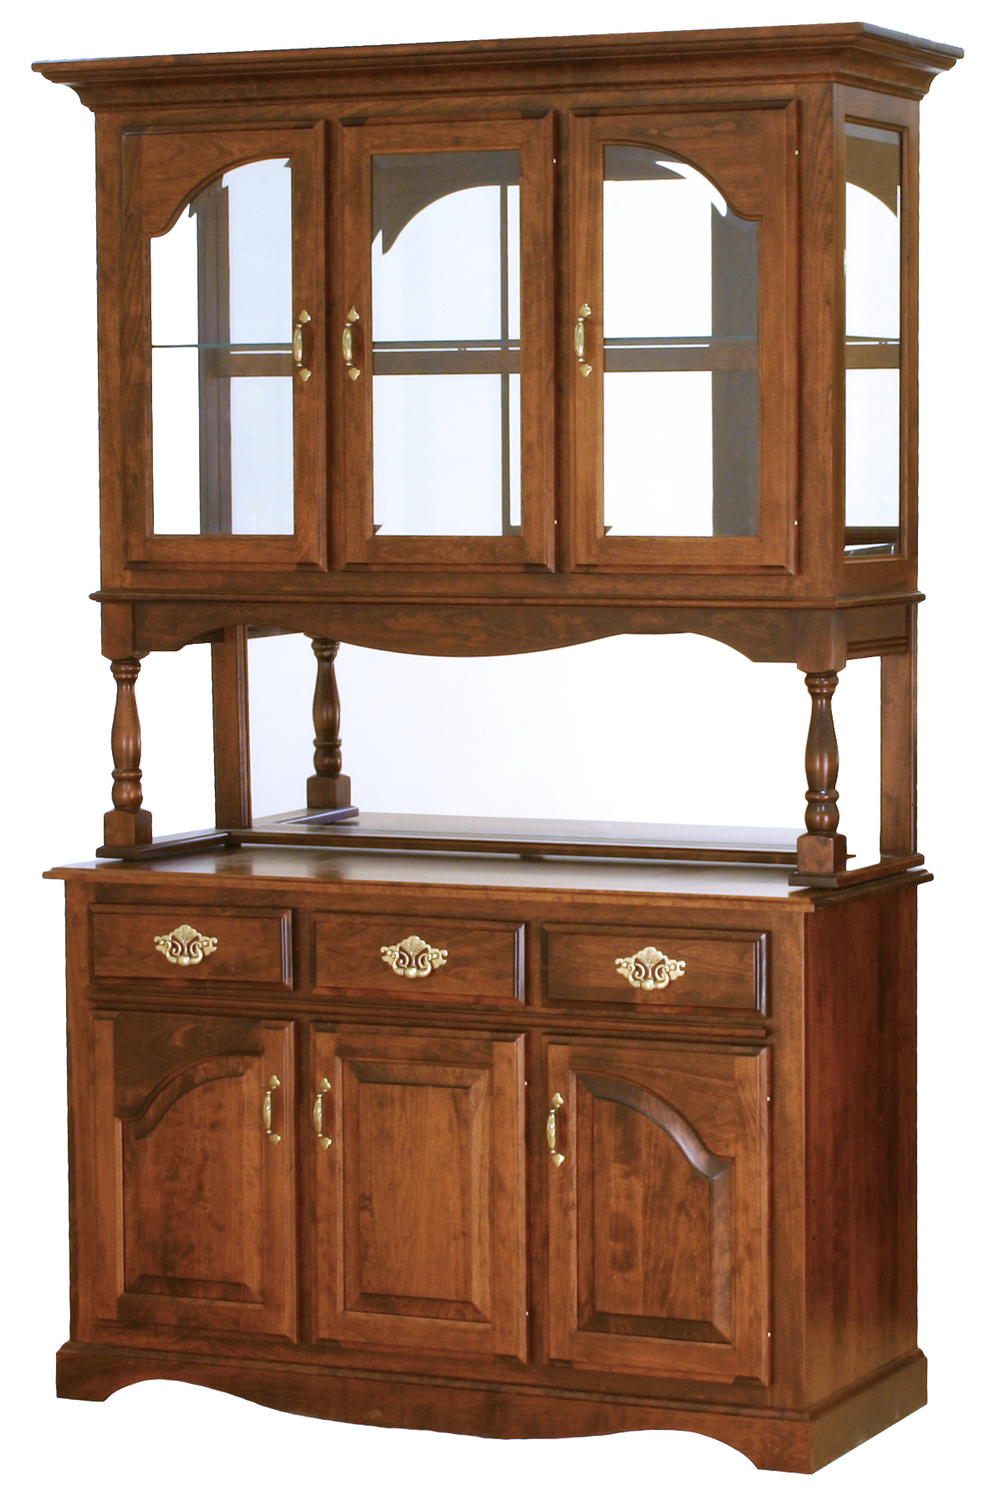 Canal Dover - Valley French Hutch & Buffet